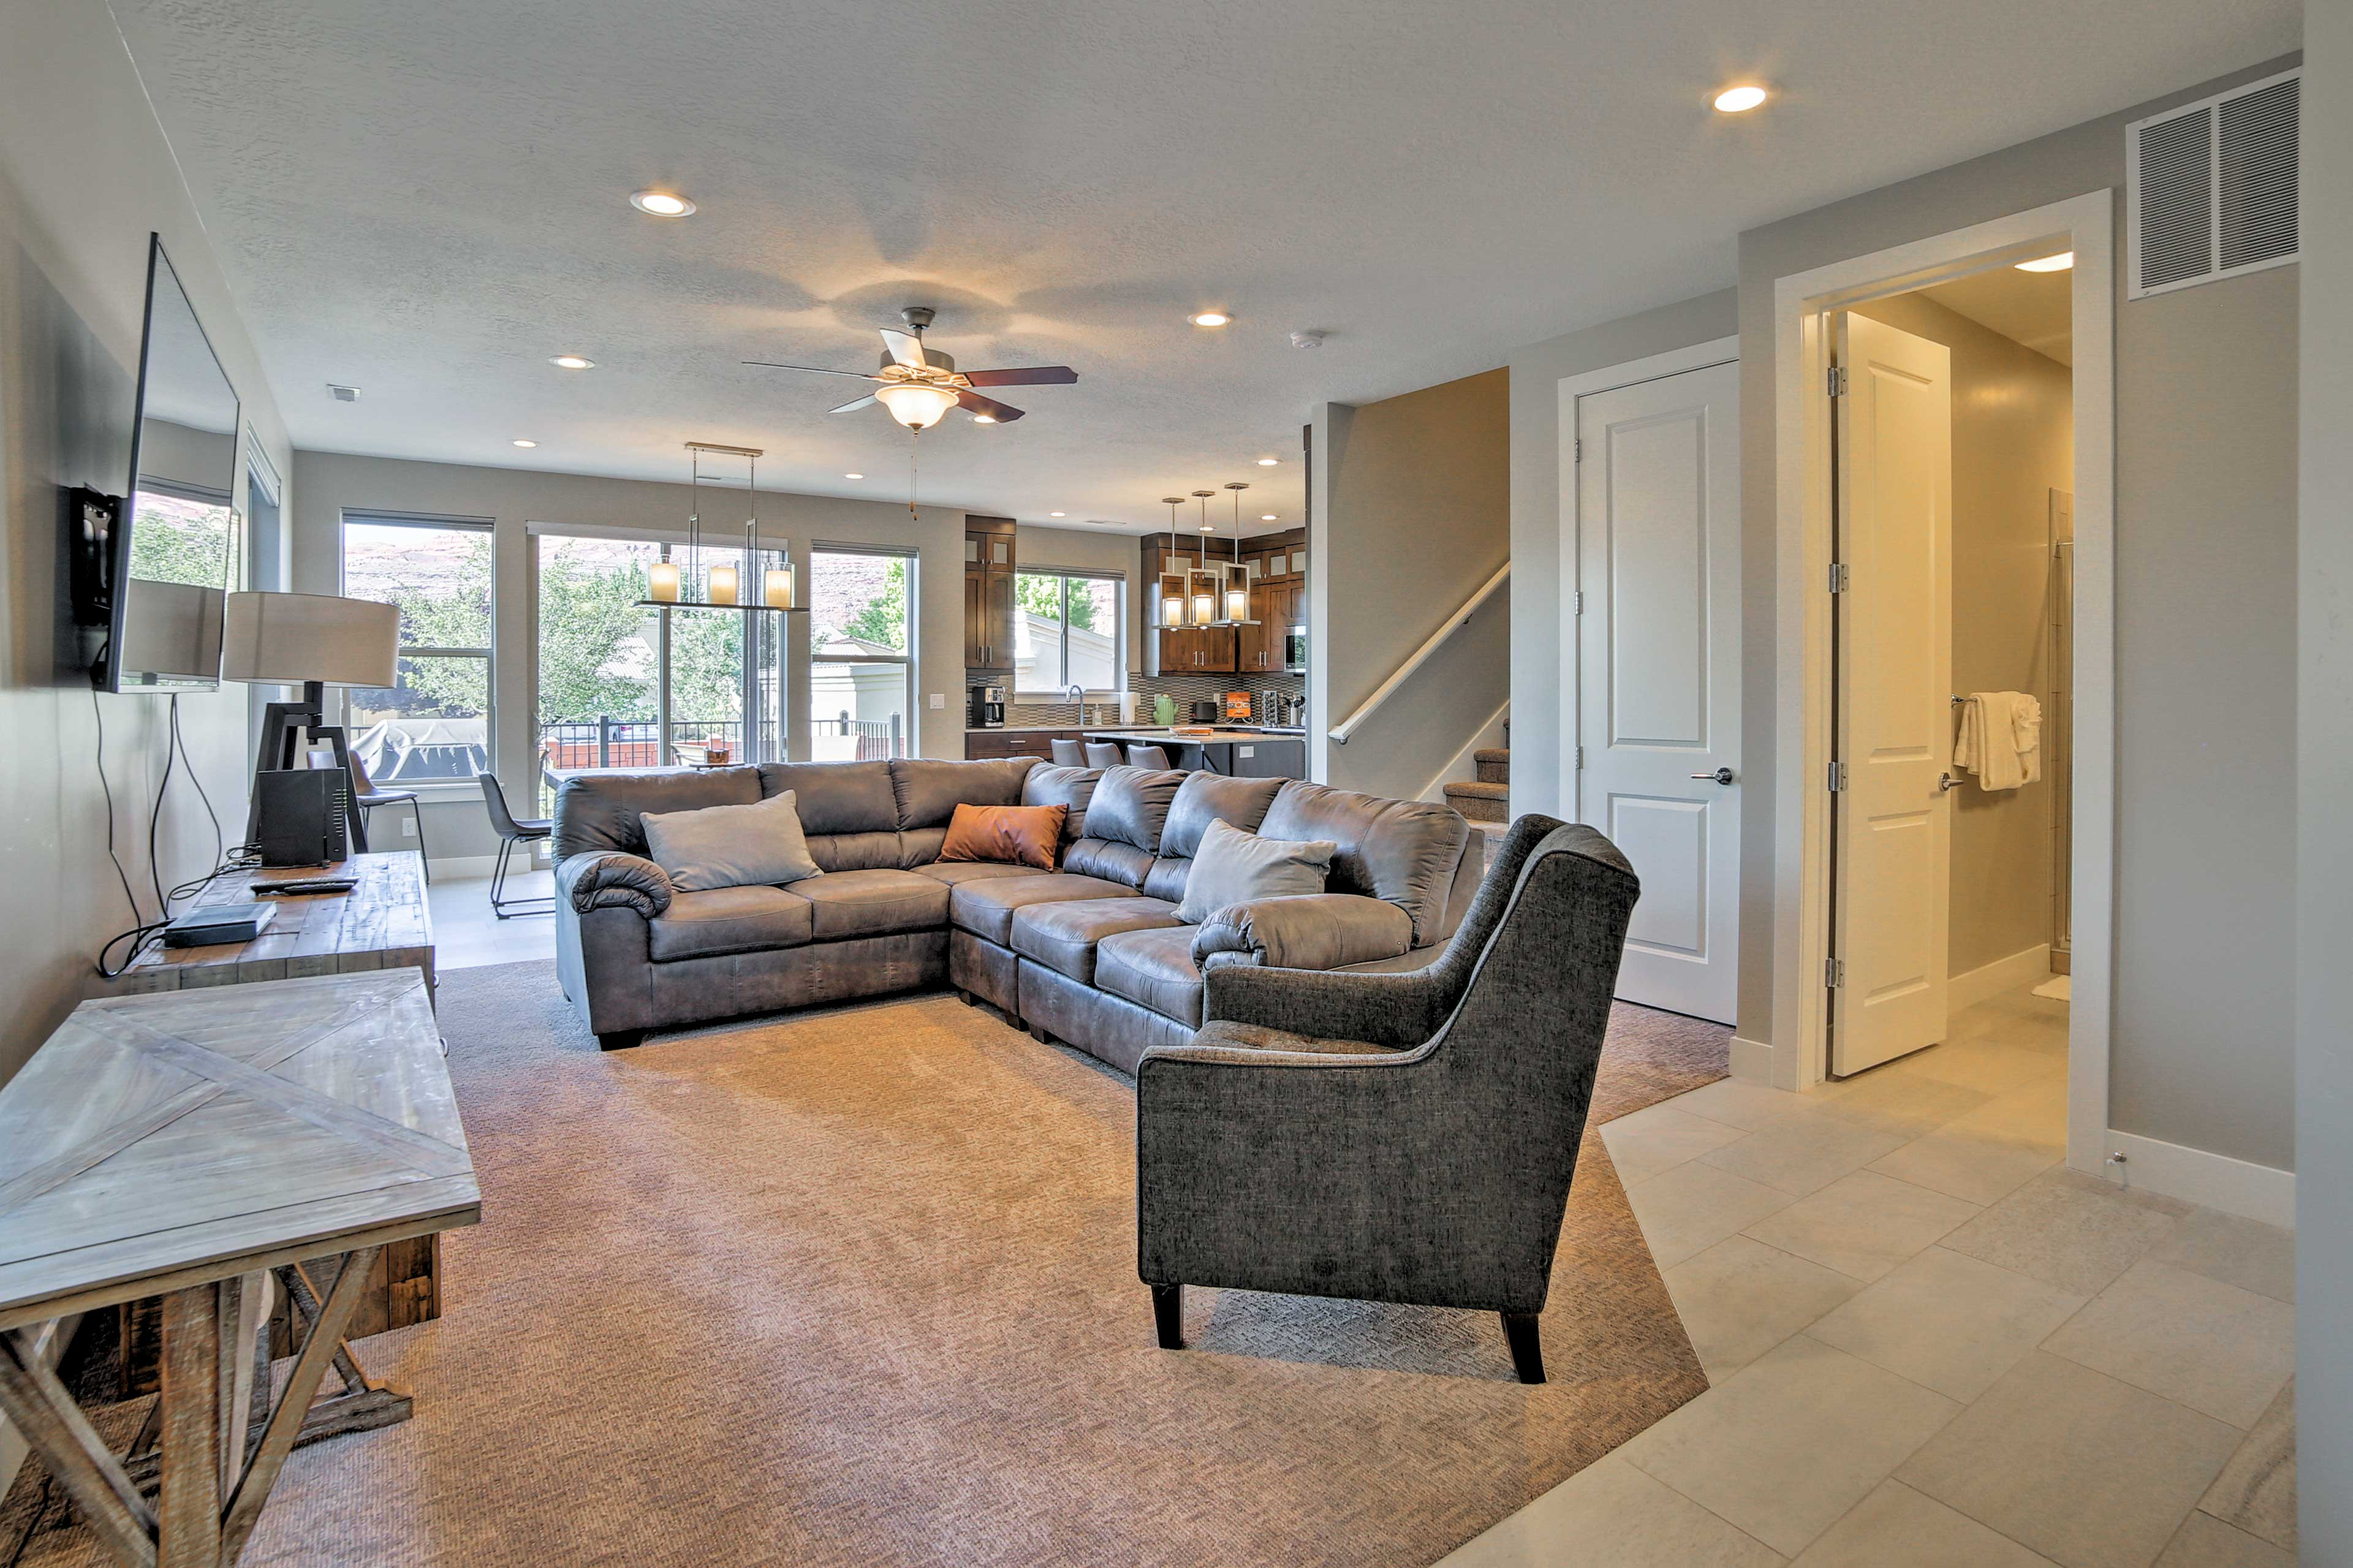 The property is newly constructed and designed with comfort in mind.